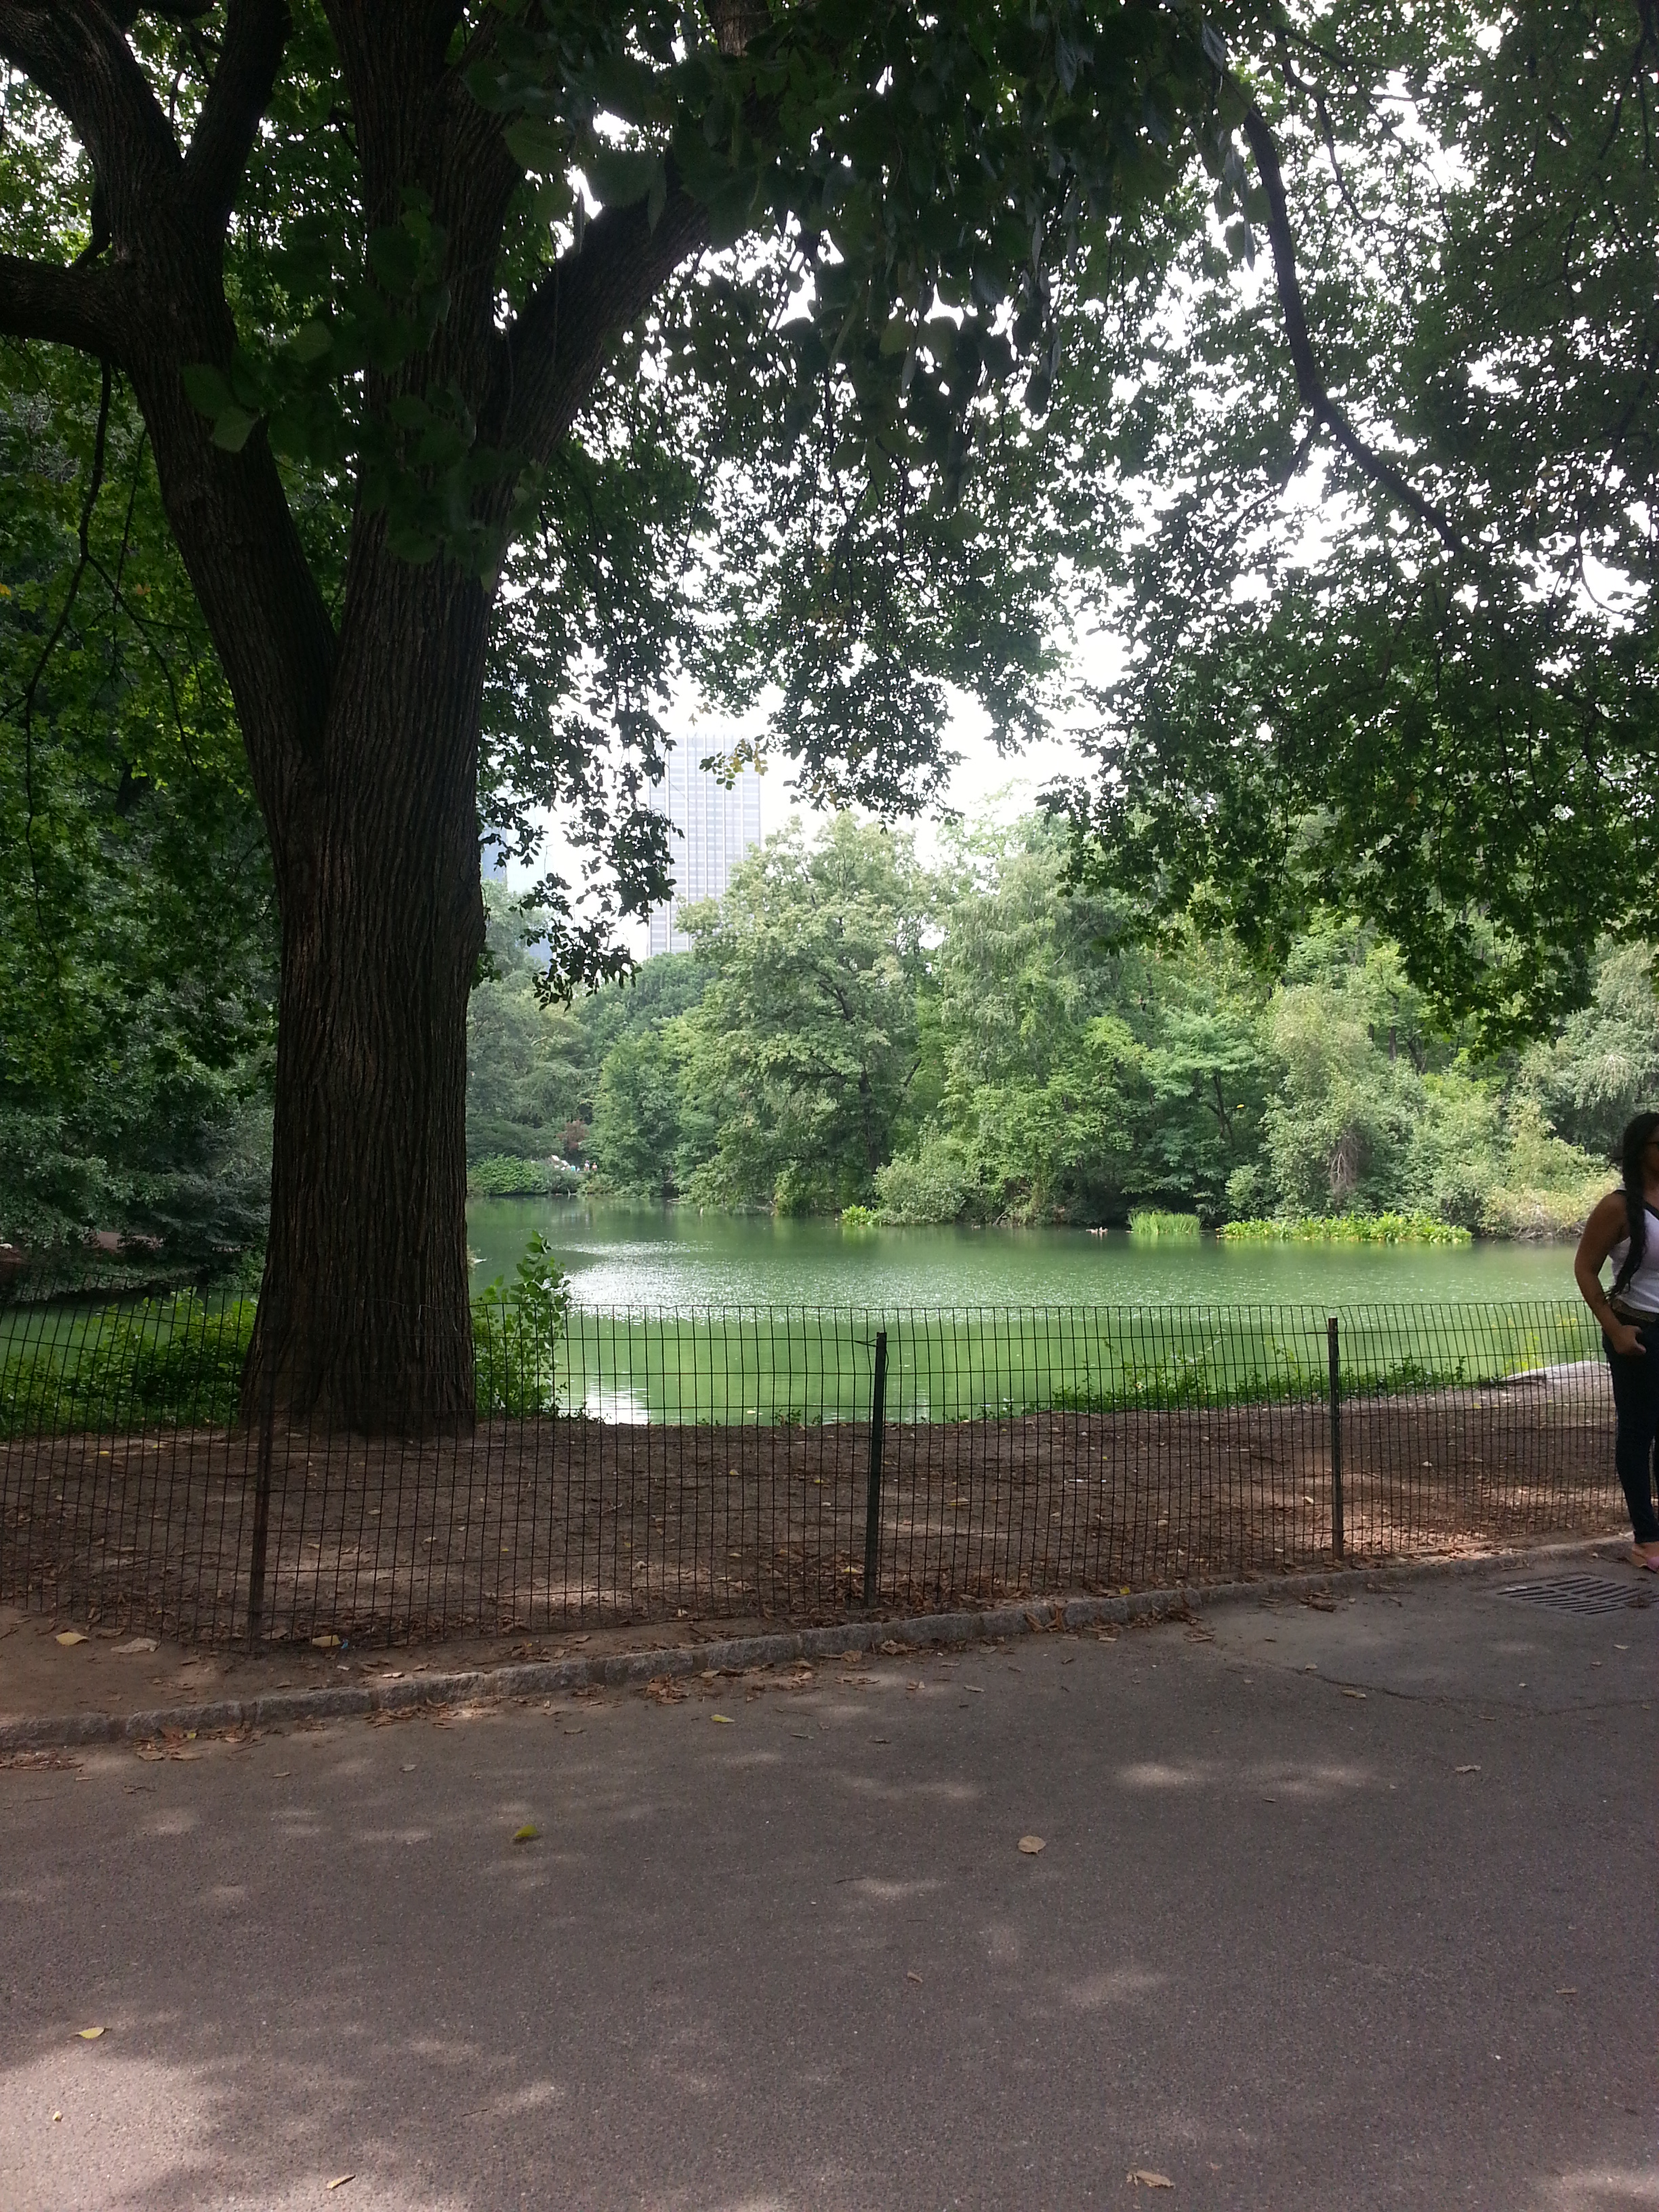 TIme to Get Away - New York City Parks - FINDS Blog